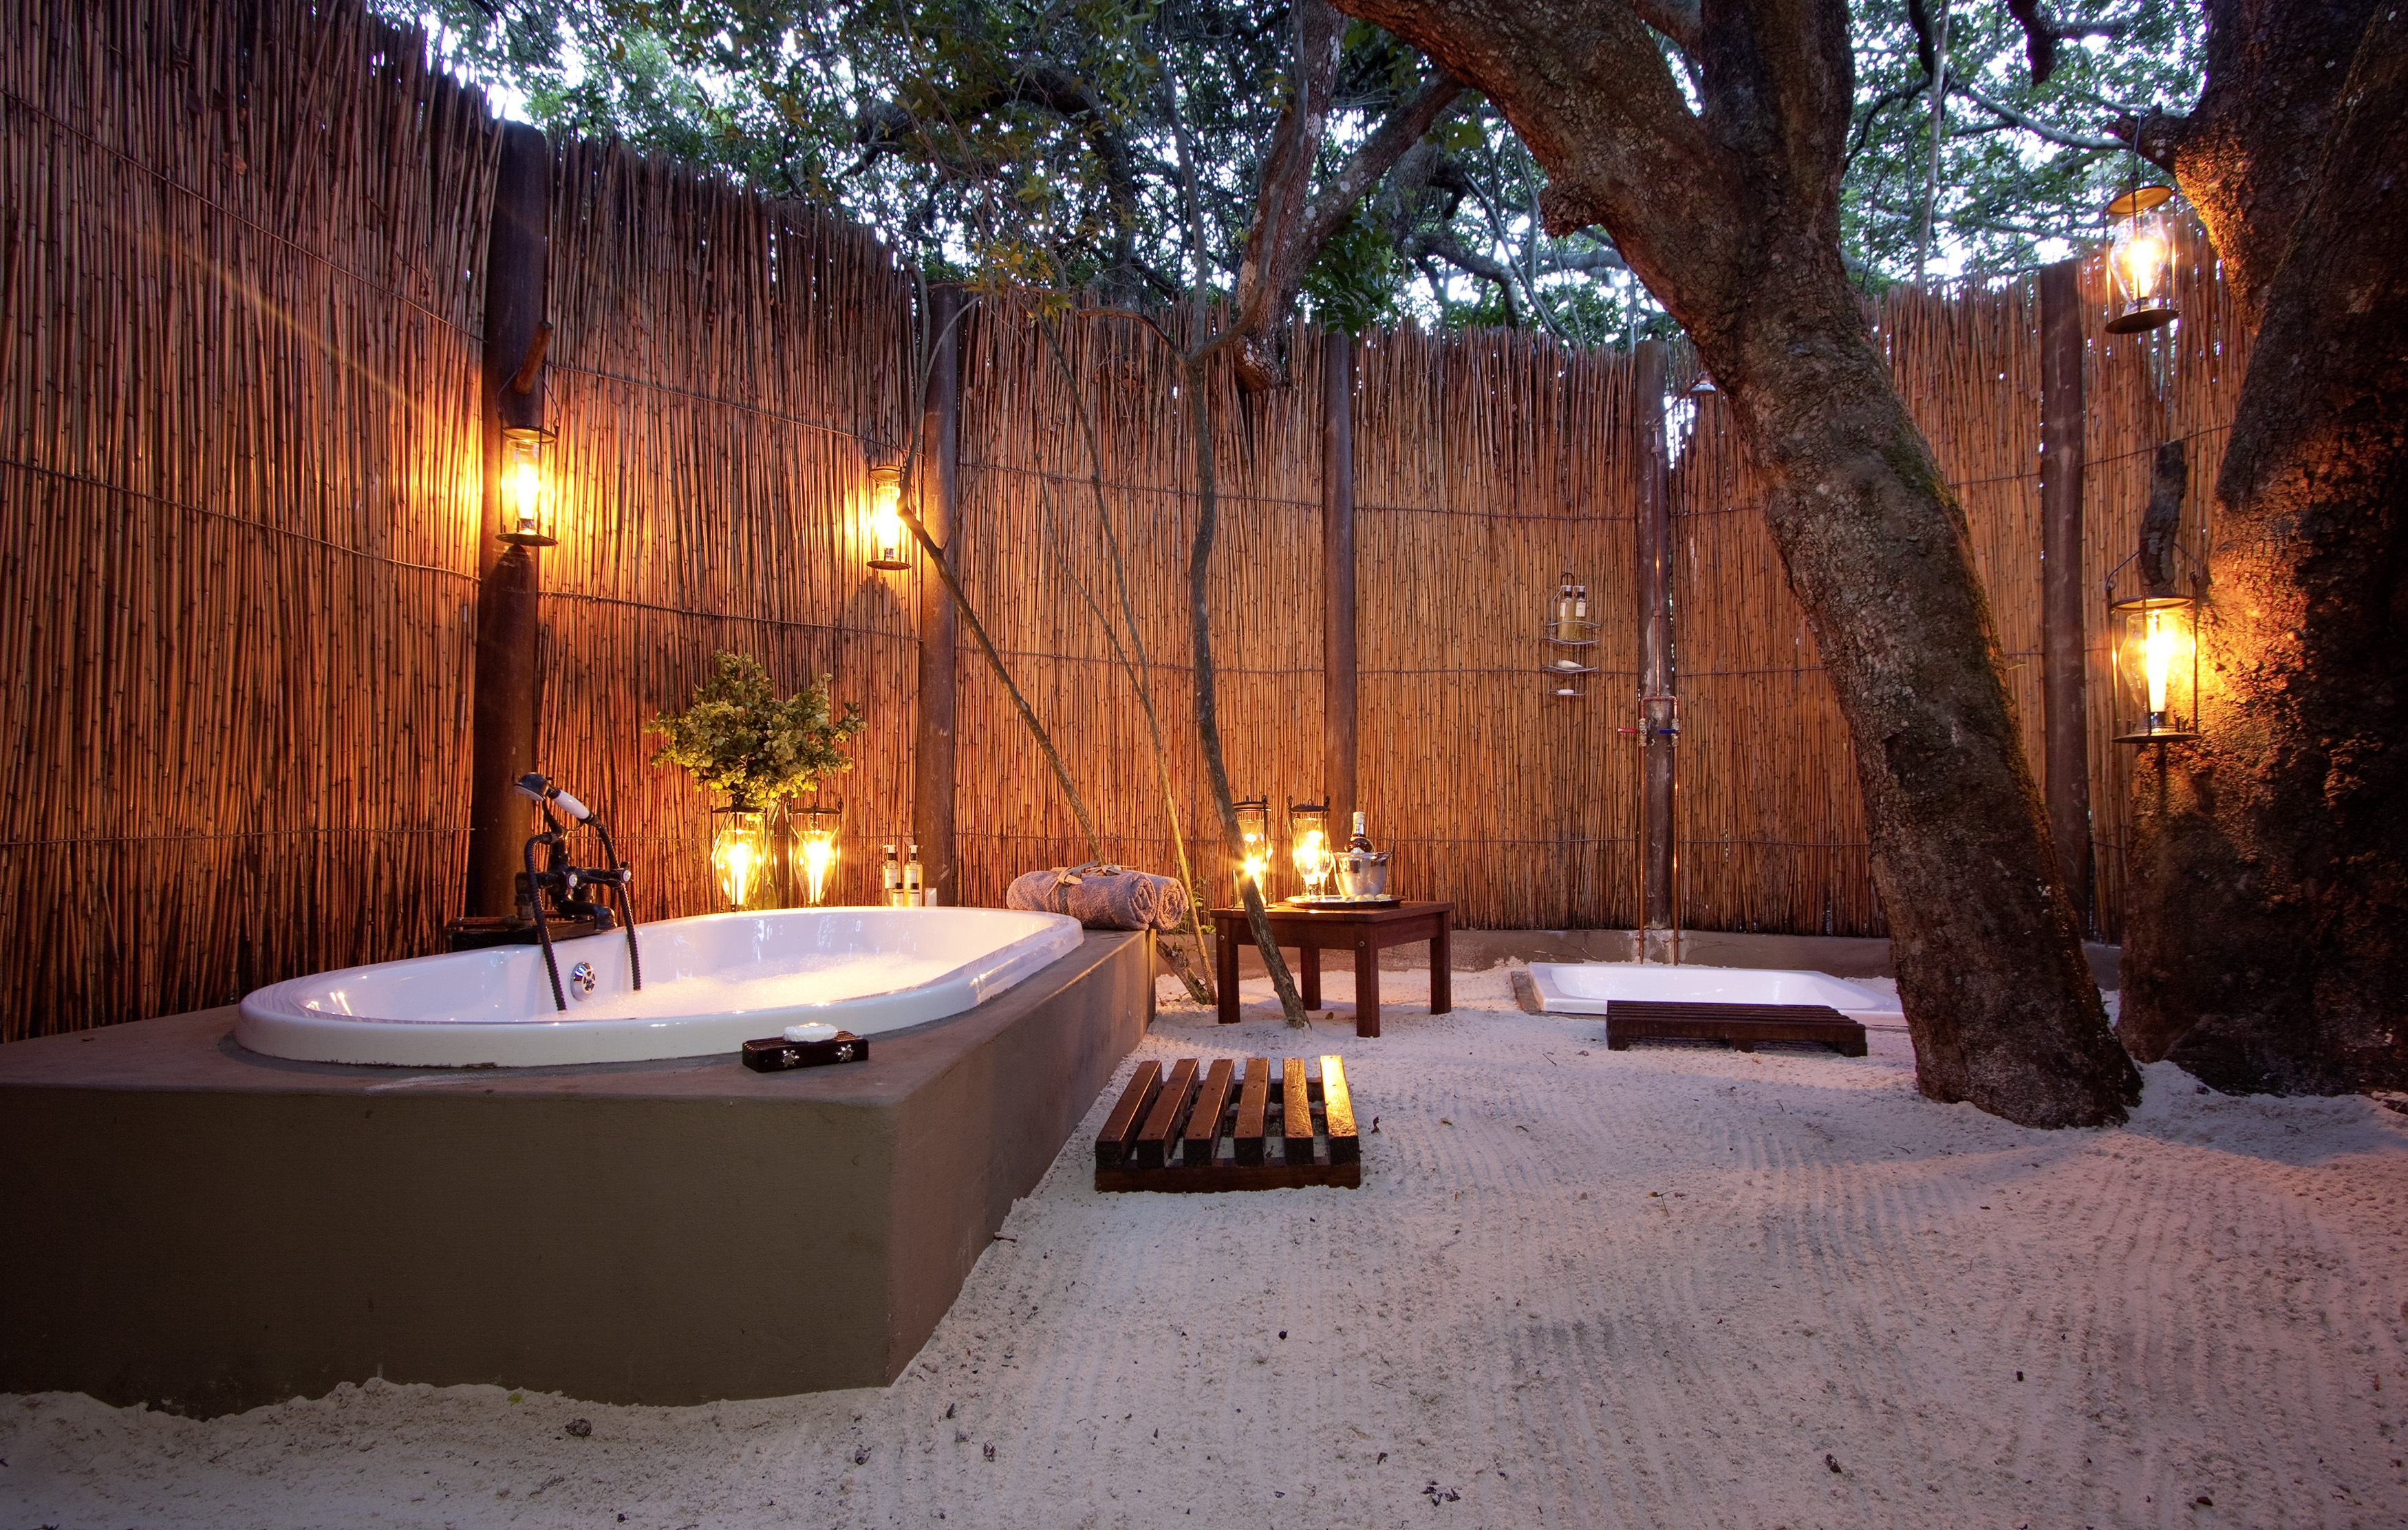 Bathing under open African skies, by candlelight, is one for the Bucket List